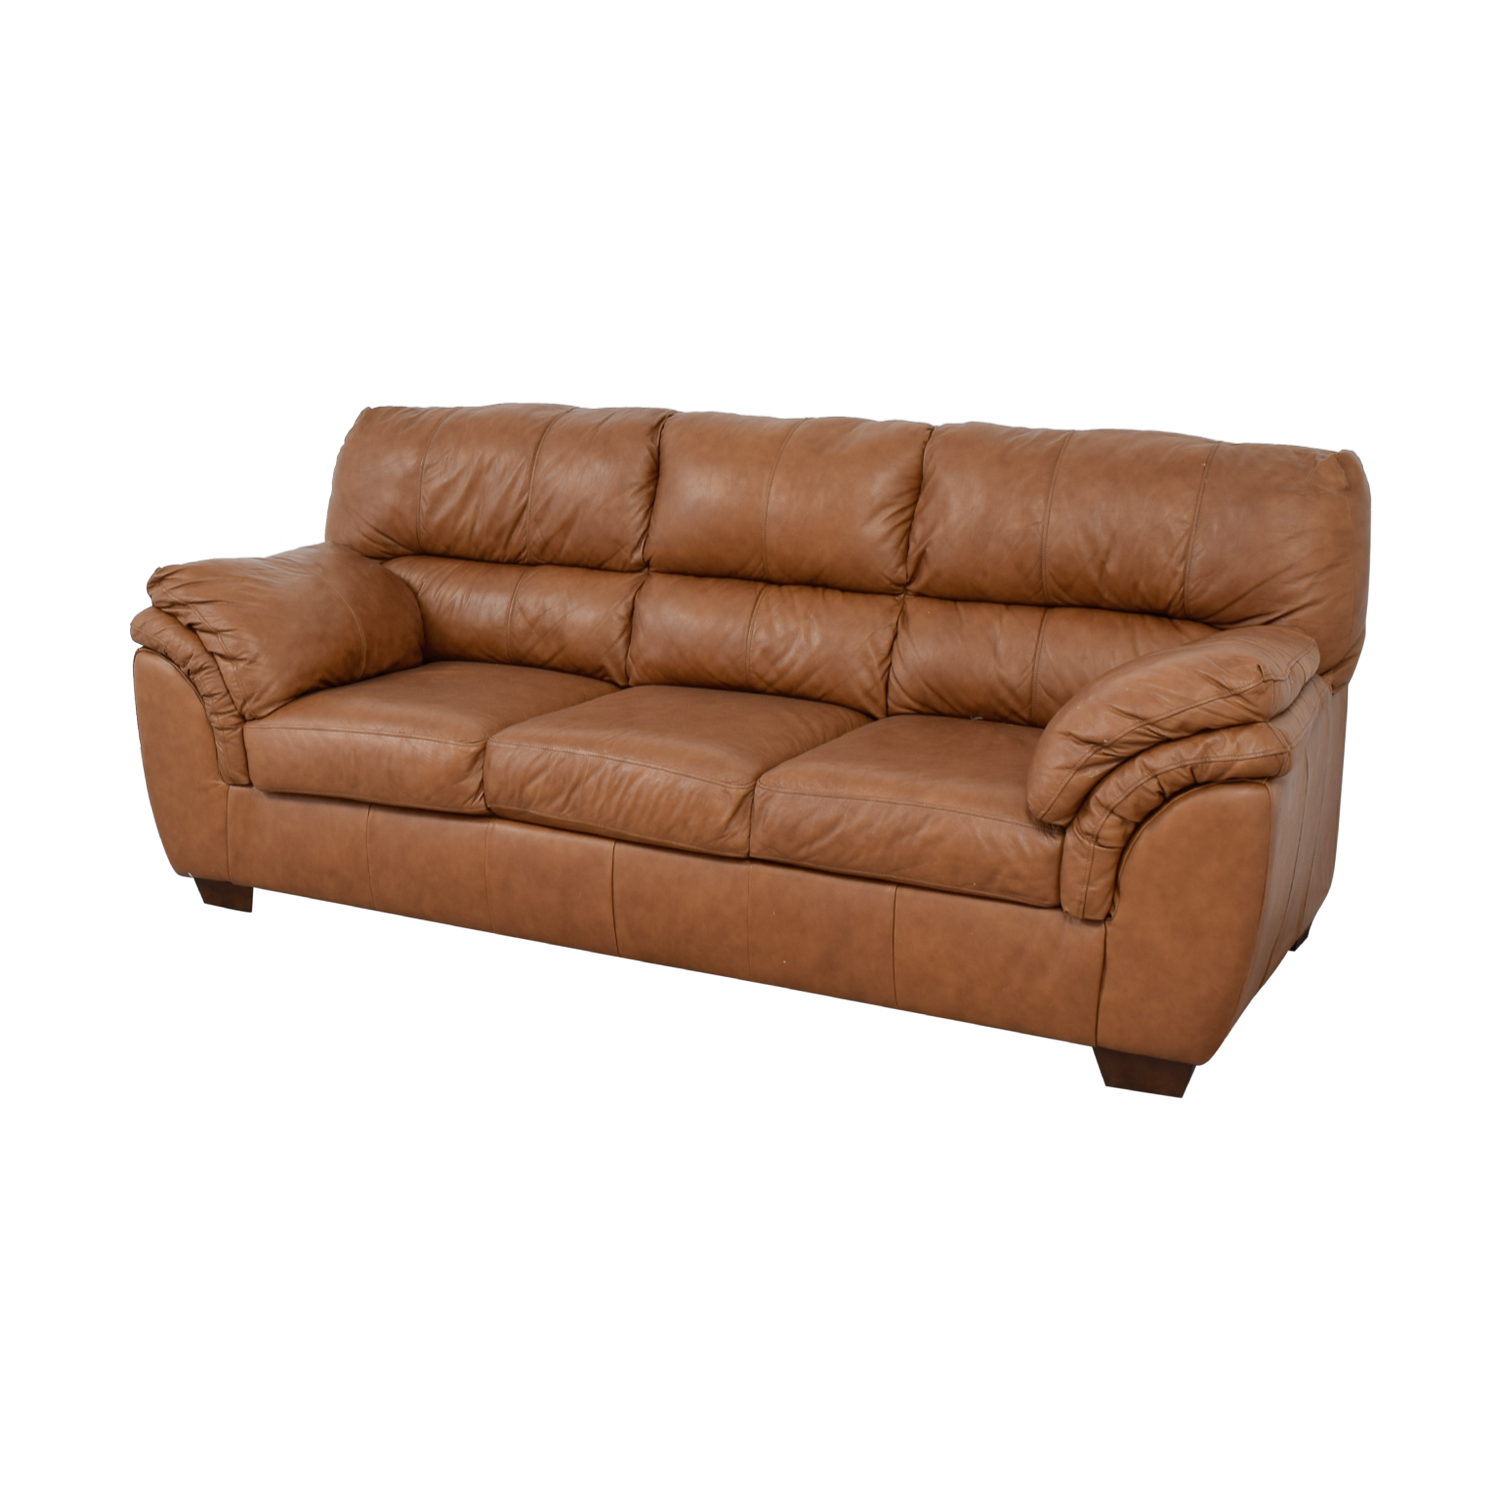 49% OFF - Ashley Furniture Ashley Furniture Bladen Cognac Leather ...